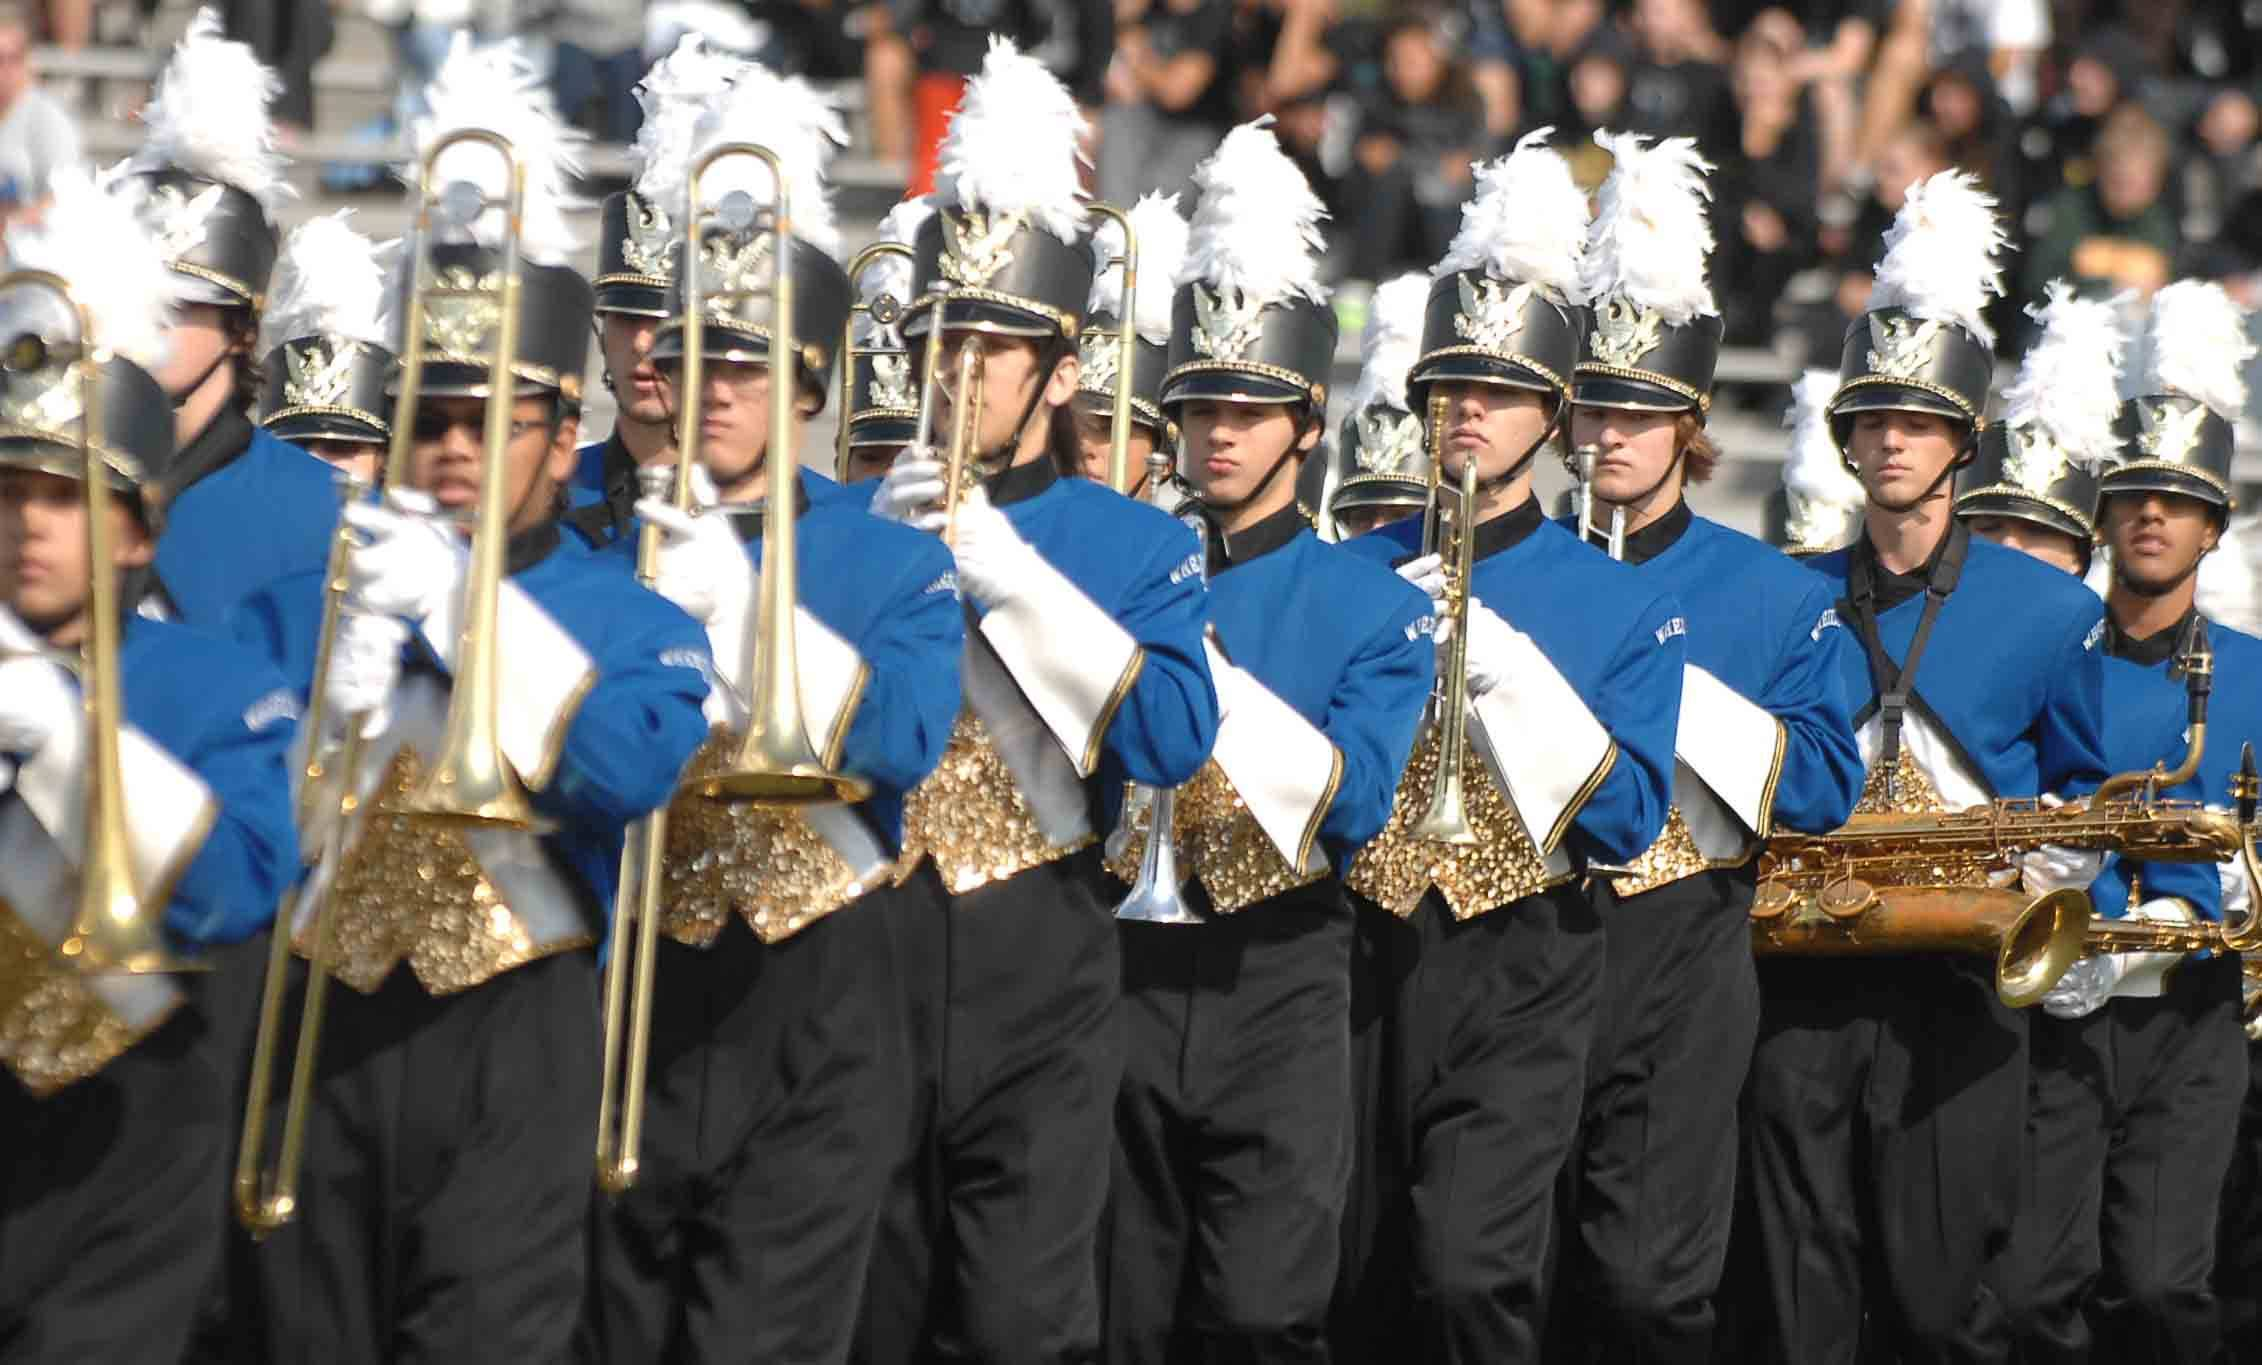 The Wheeling High School Marching Wildcats are a perennial participant in the Lake Park Lancer Joust, and this year the group is scheduled to give its preliminary performance at 2:15 p.m. Saturday in Roselle.